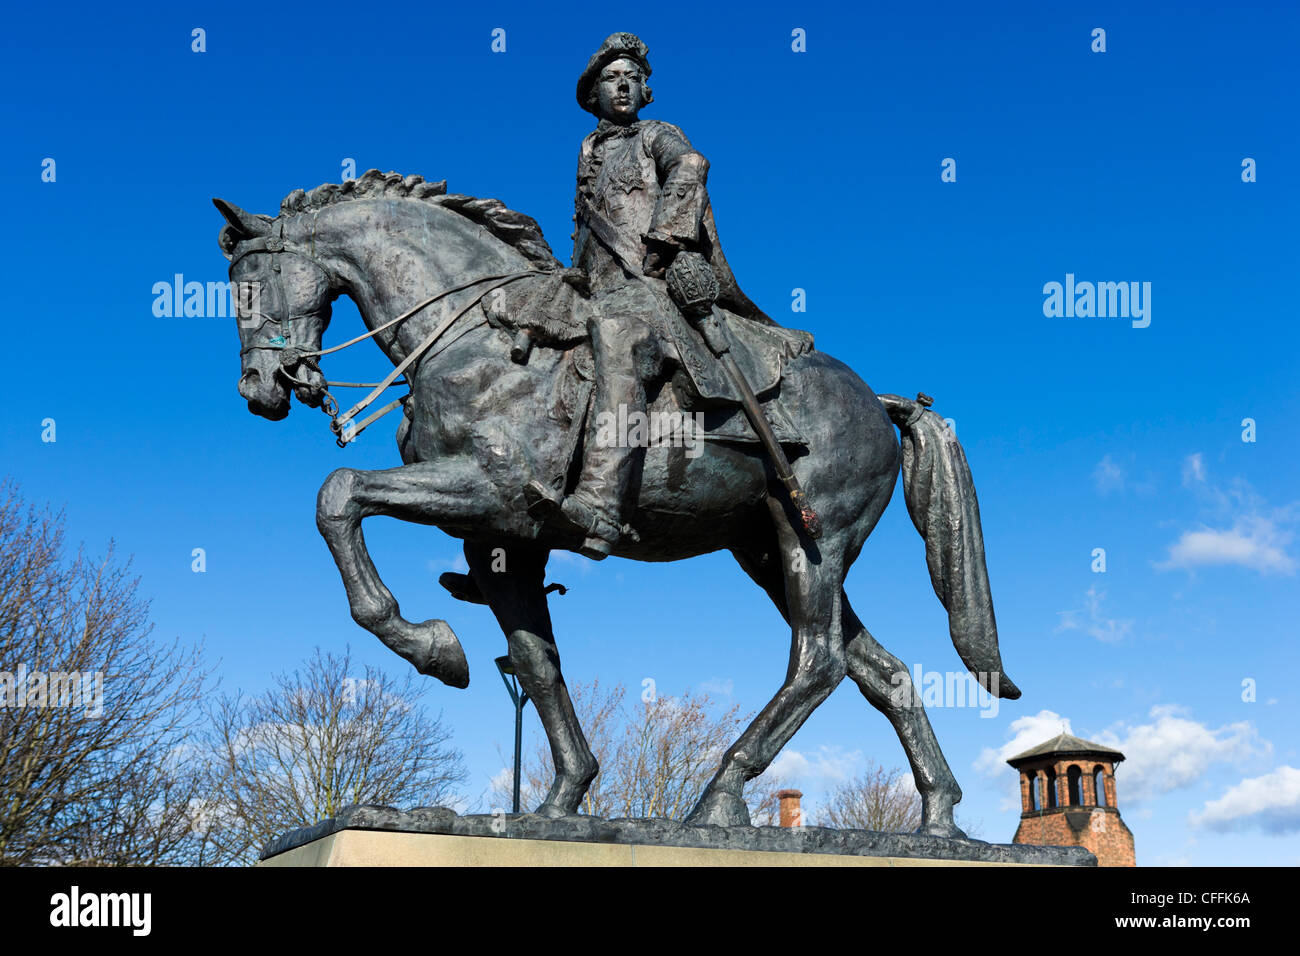 Statue of Bonnie Prince Charlie by Anthony Stones on Cathedral Green, Derby, Derbyshire, East Midlands, England, - Stock Image